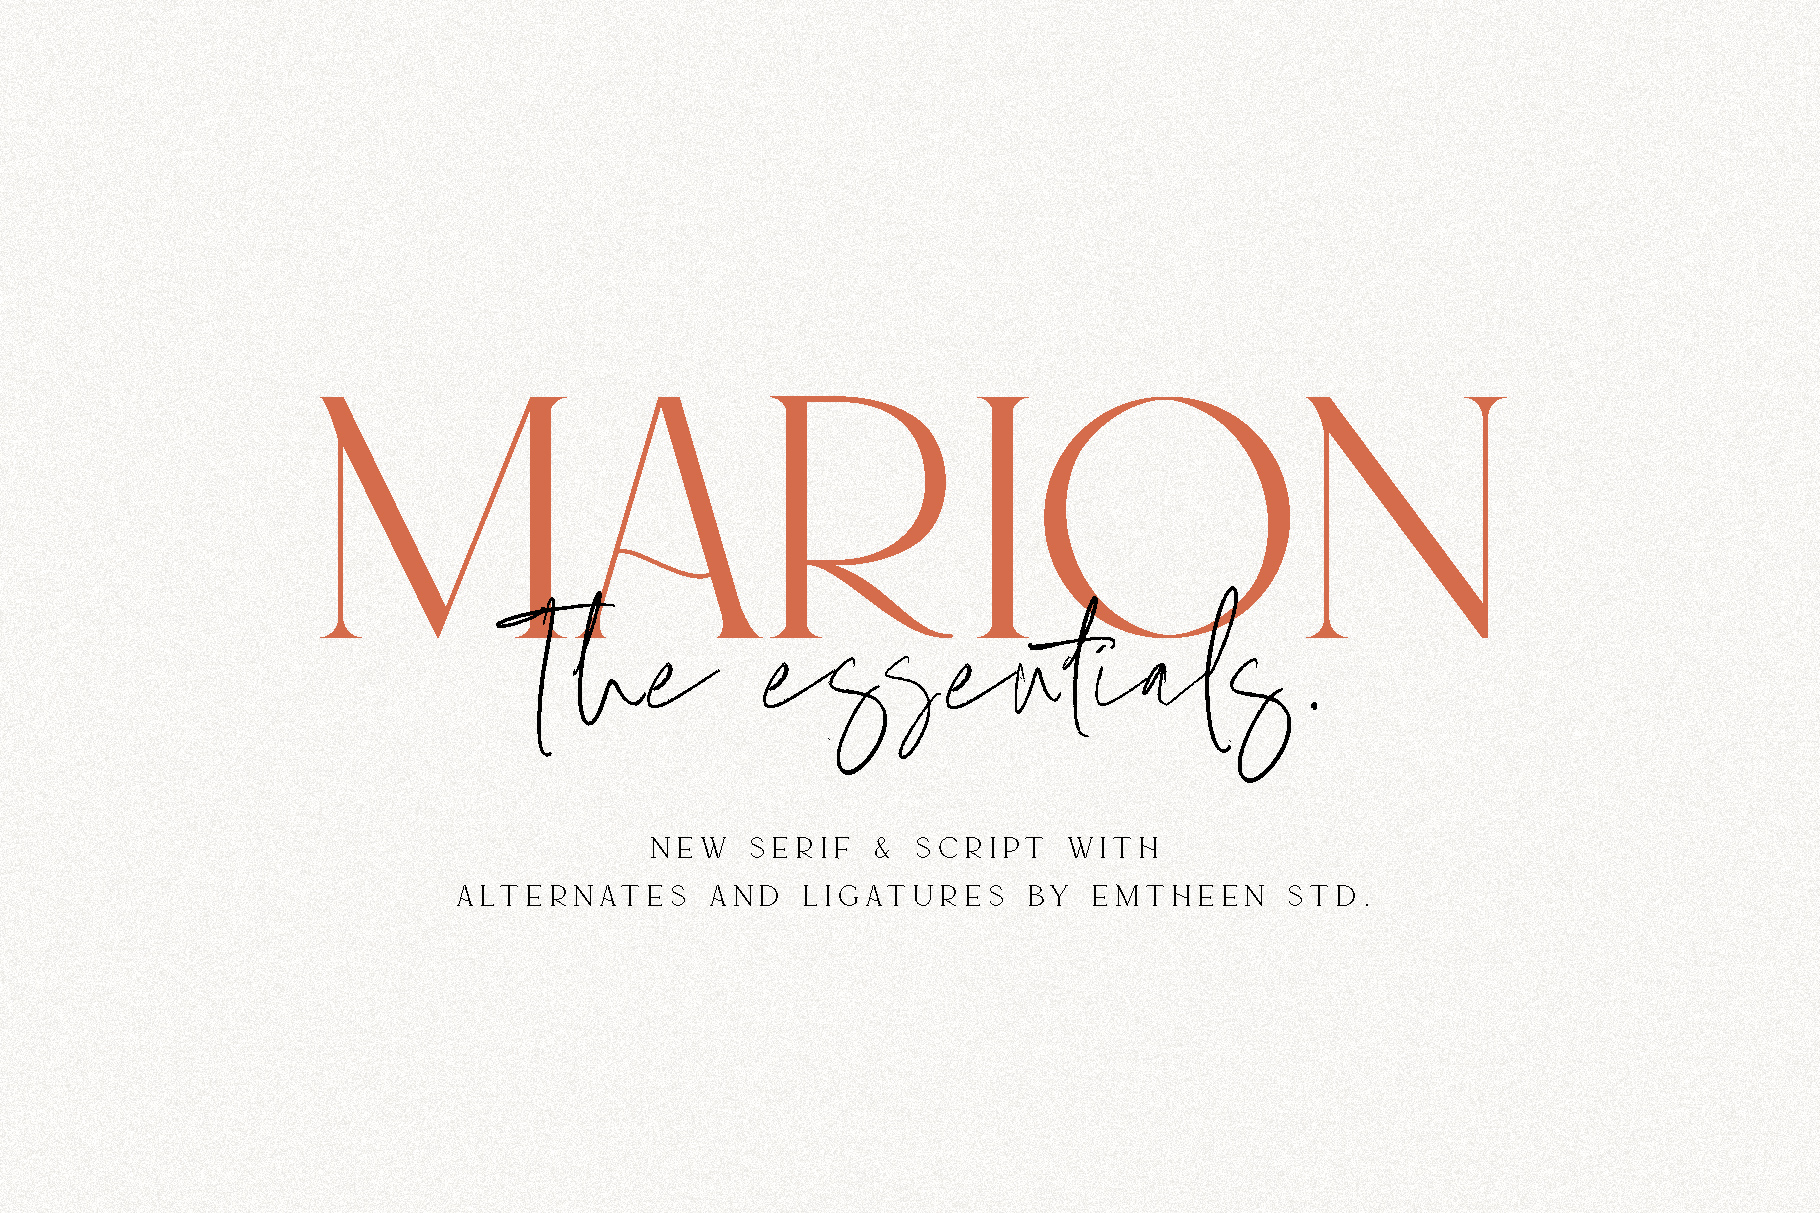 MARION & The Essentials example image 1